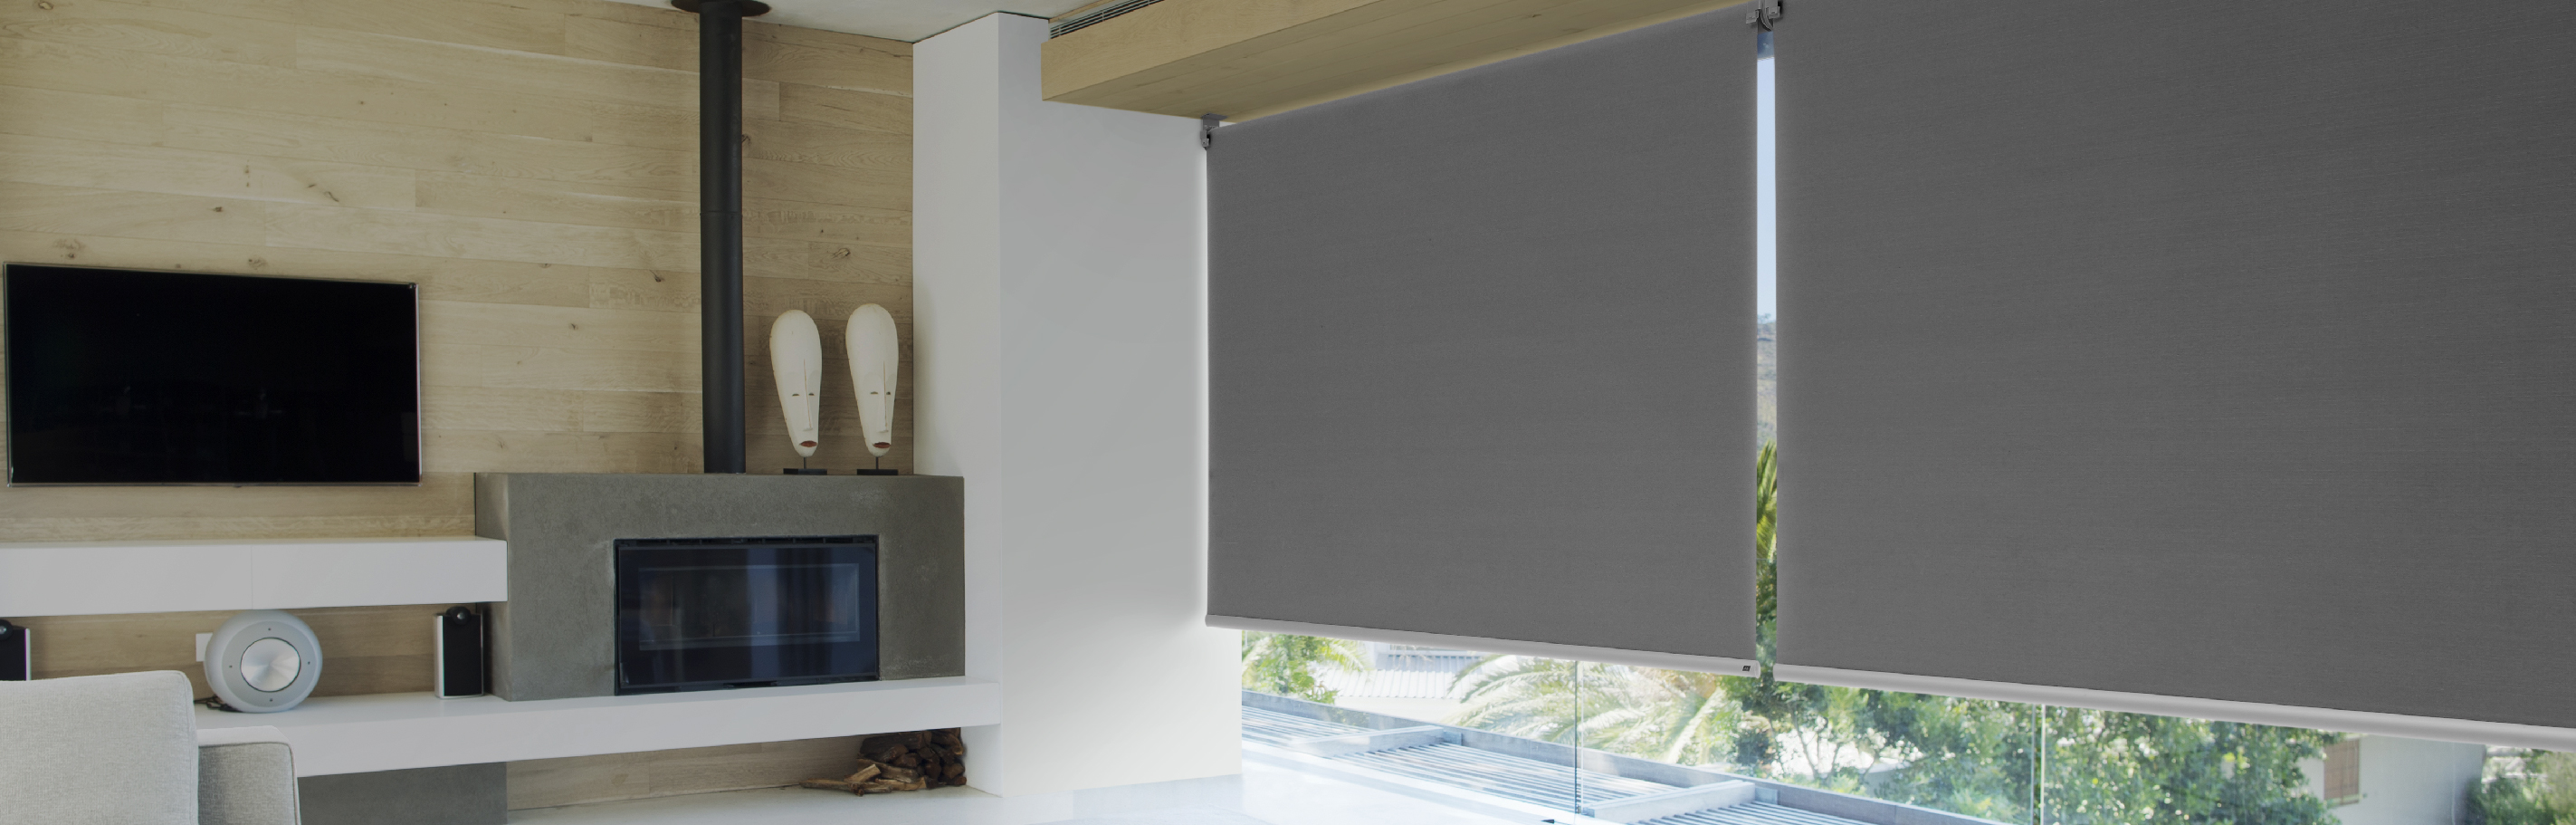 Luxaflex - Products - Softshades and Fabrics - Roller Blinds Bottom